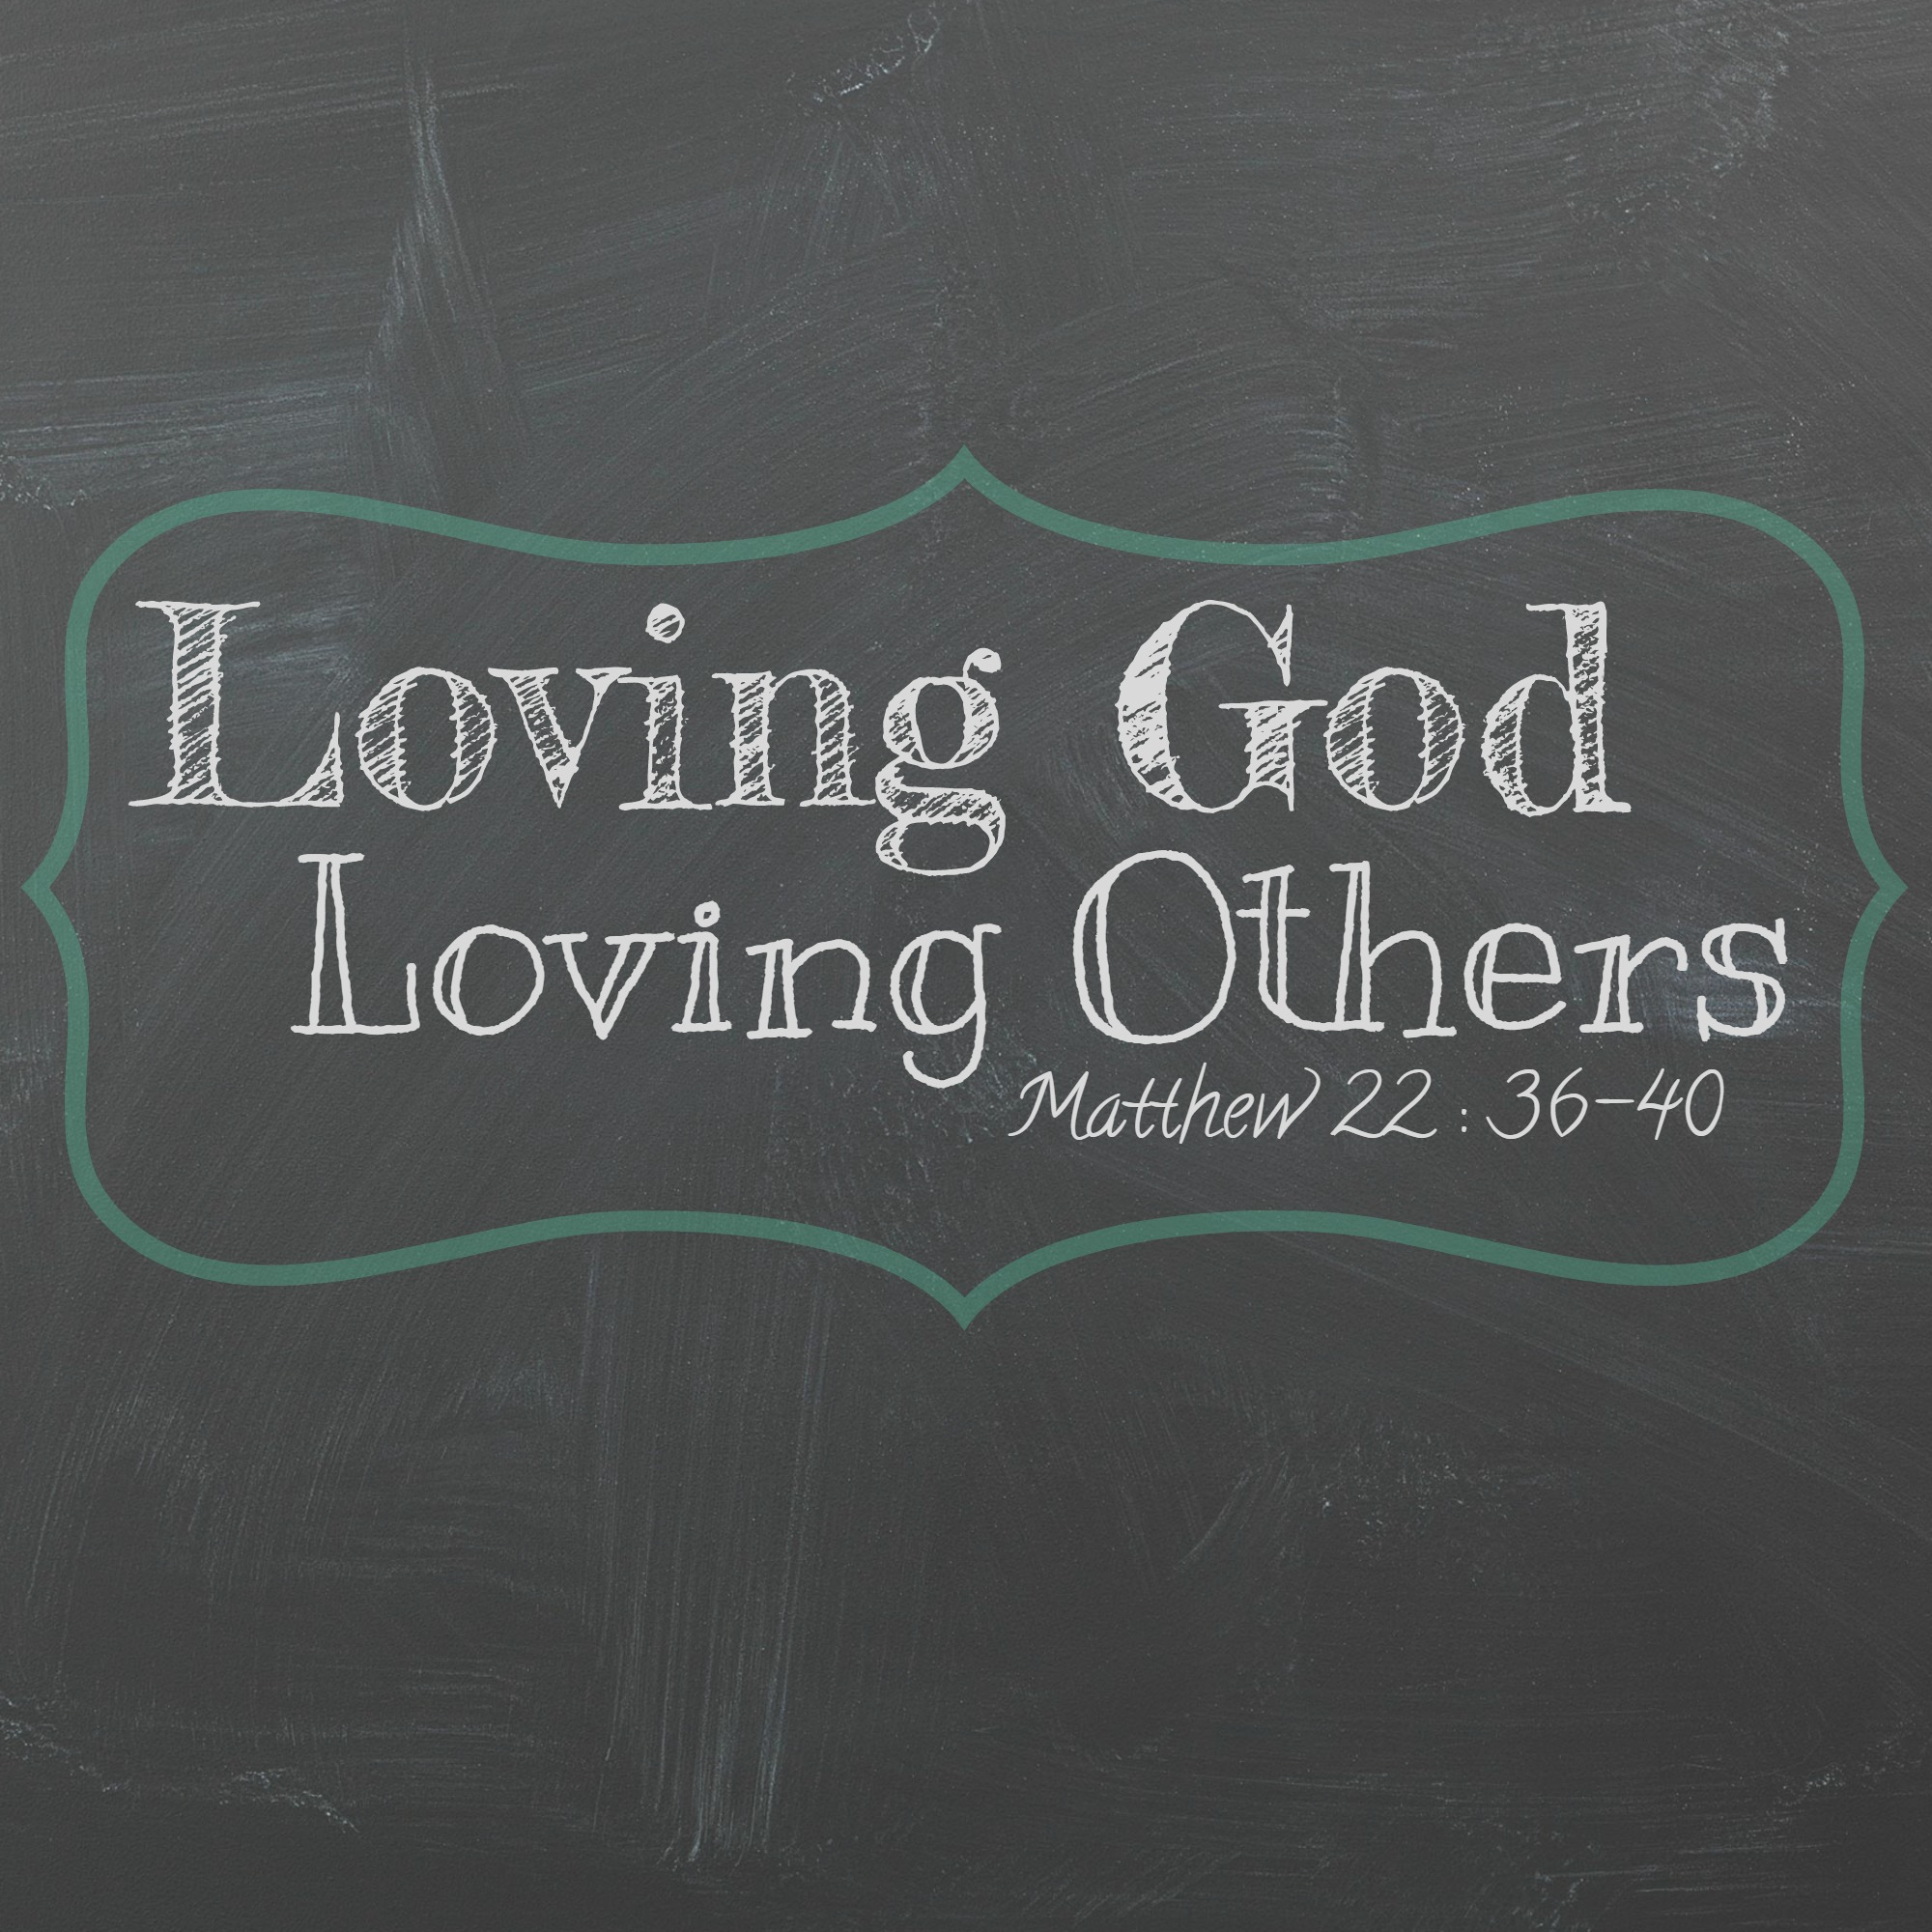 In Love God Each Other: Loving God Loving Others Blog